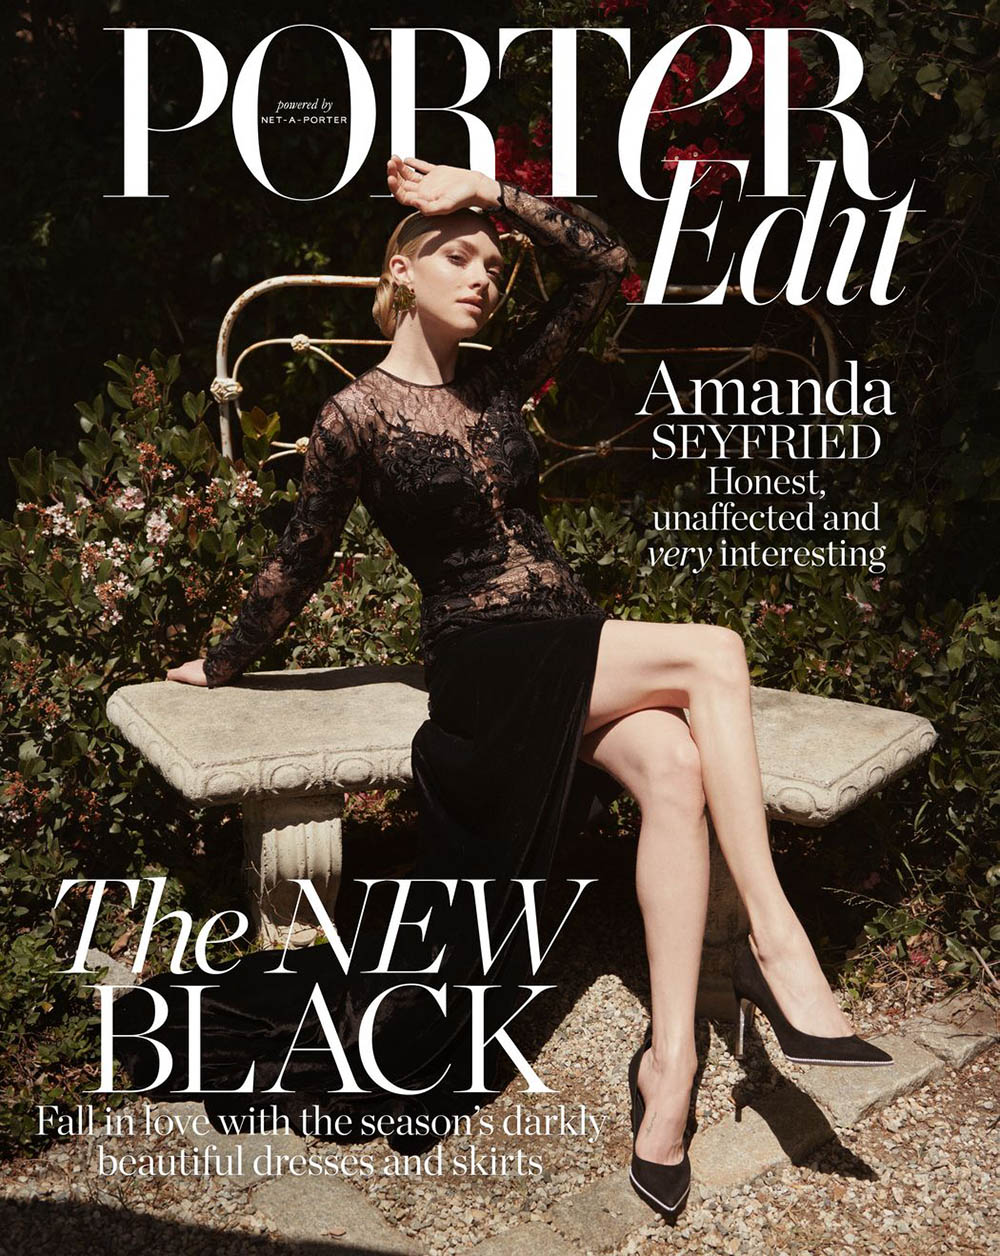 Amanda Seyfried covers Porter Edit July 13th, 2018 by Ward Ivan Rafik